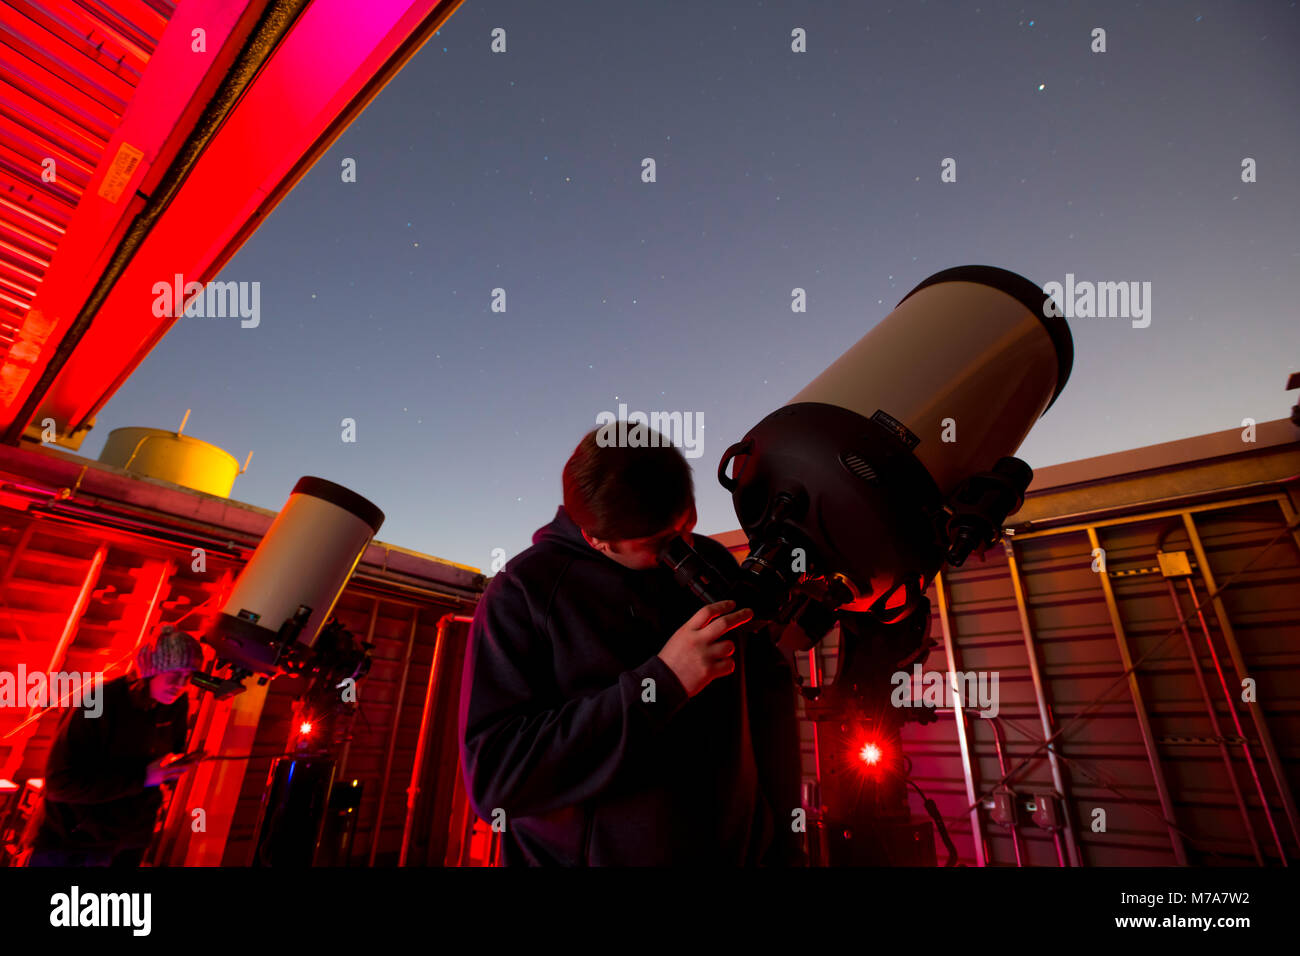 Amateur star gazing at Montgomery College Rockville Maryland observatory using 14 inch reflecting Celestron telescopes - Stock Image